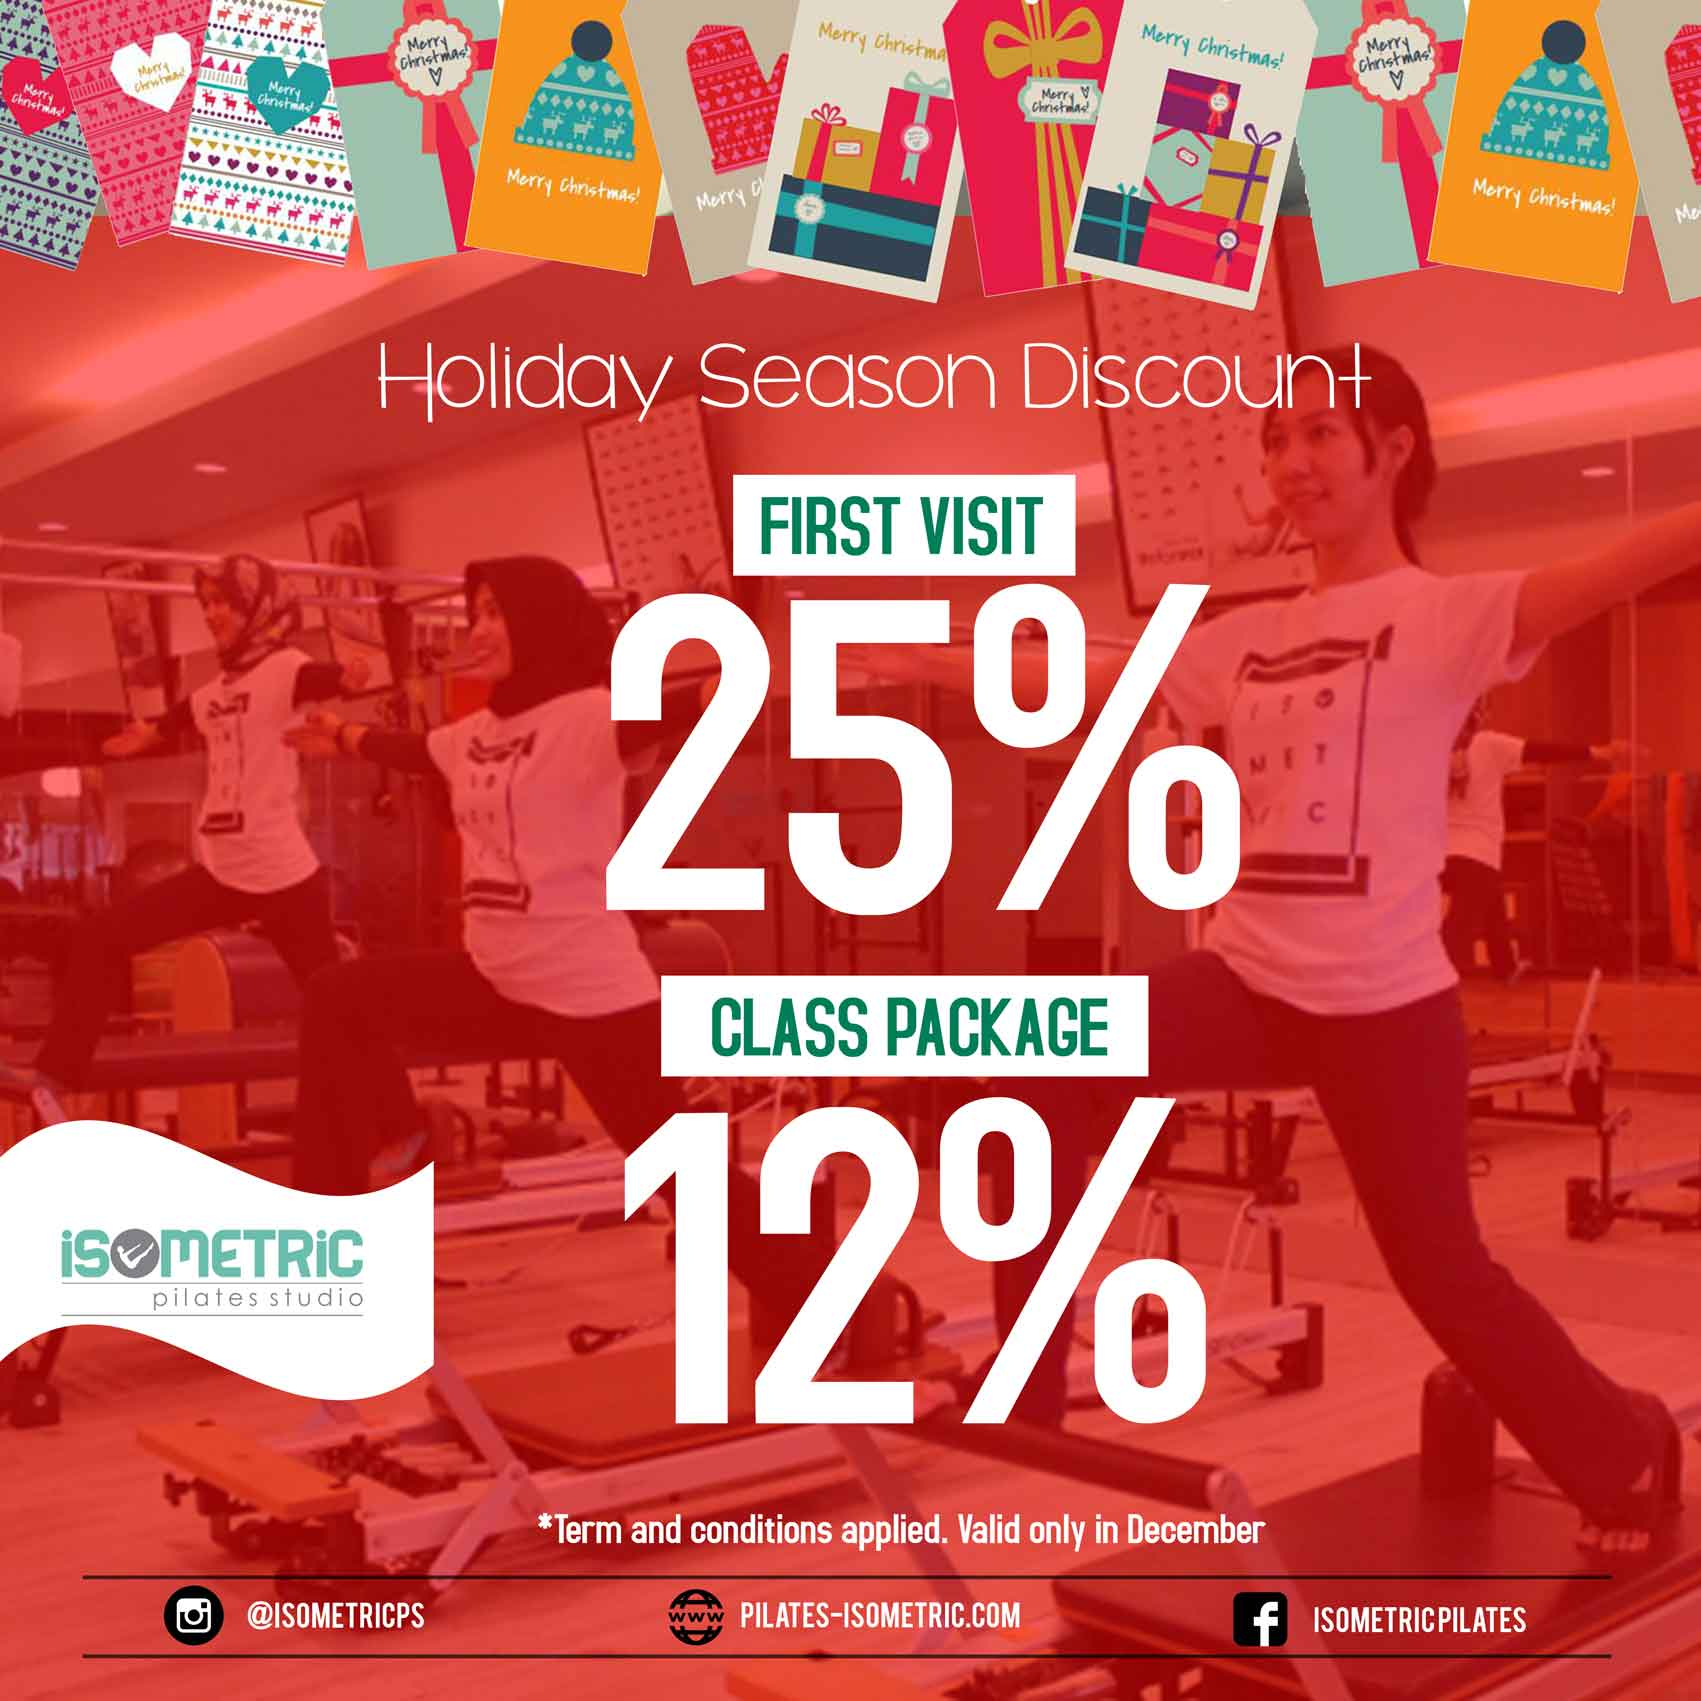 Pilates Holiday Season Discount